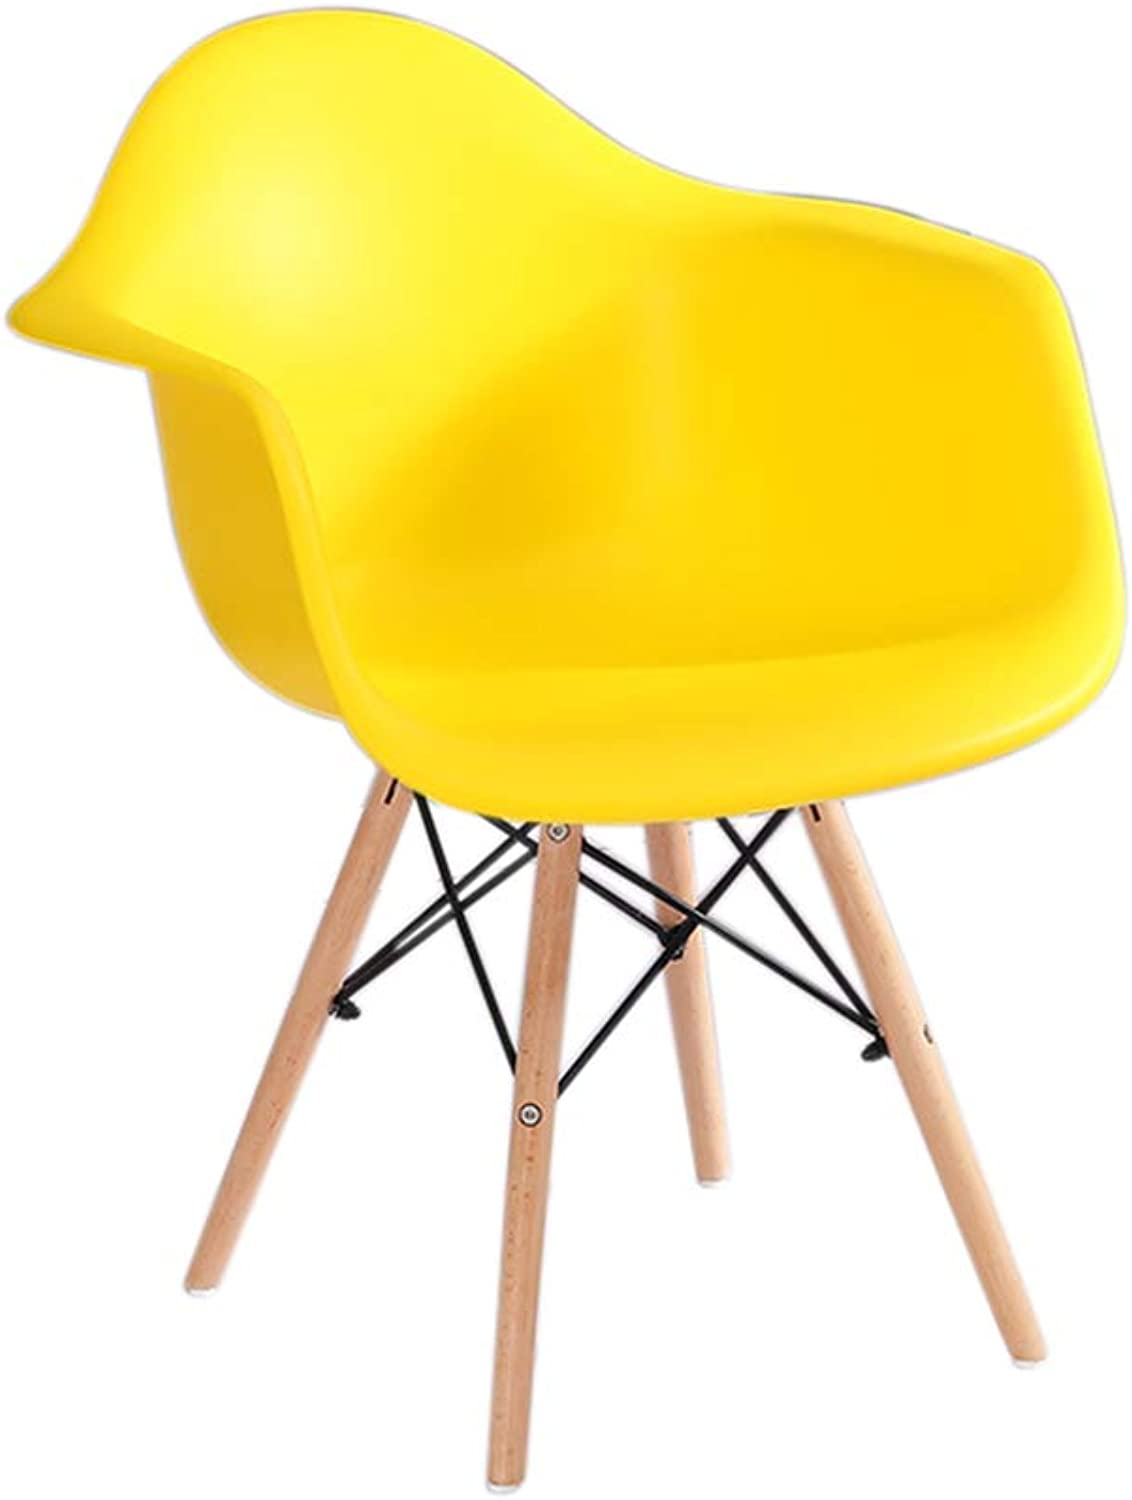 Chair - Nordic Dinette Office Chair Armchair Home Small Chair Decorating Furniture Comfortable and Durable (color   Yelloe)